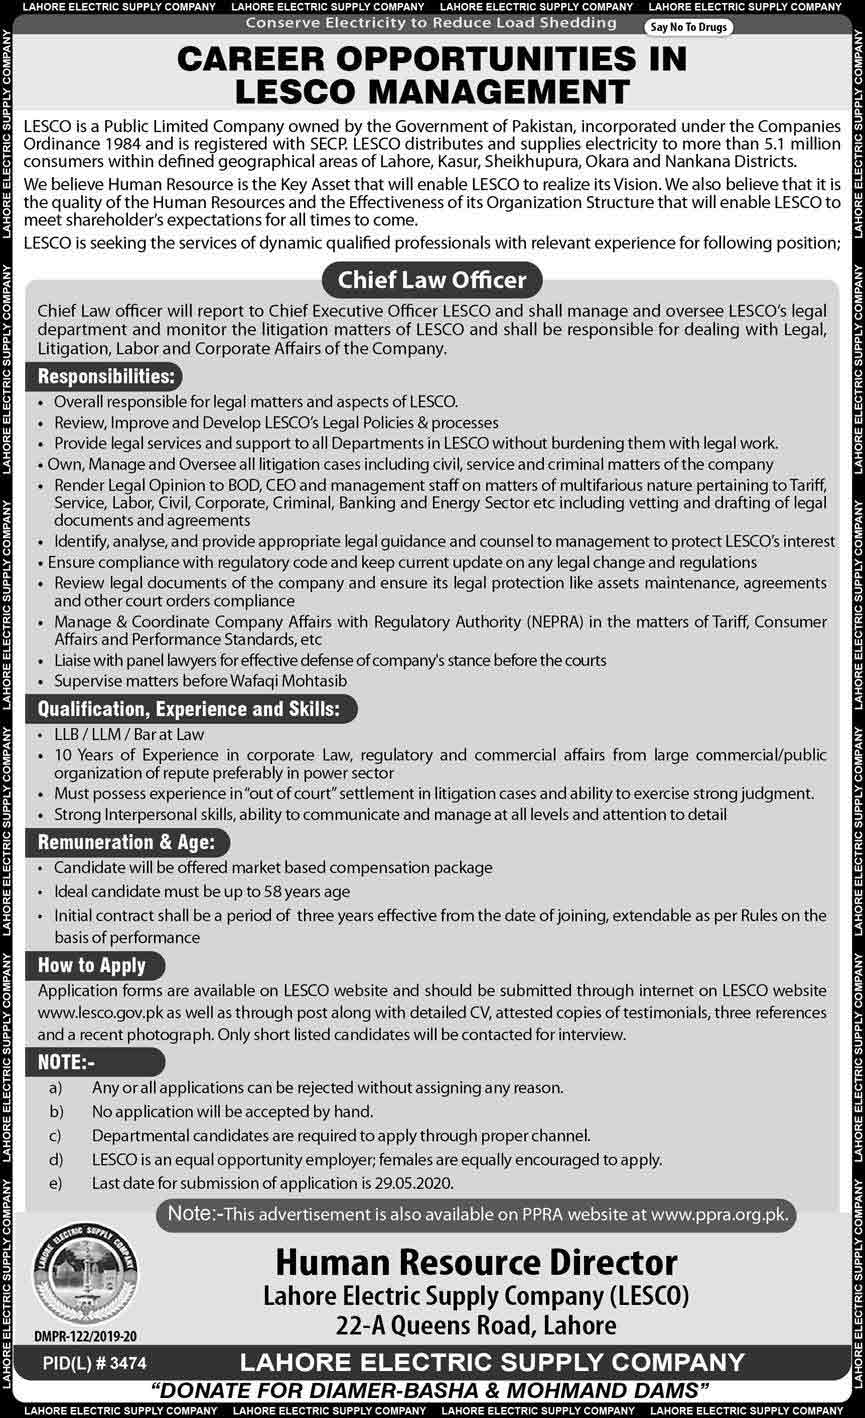 LESCO-Lahore-Jobs-2020-Chief-Law-Officer